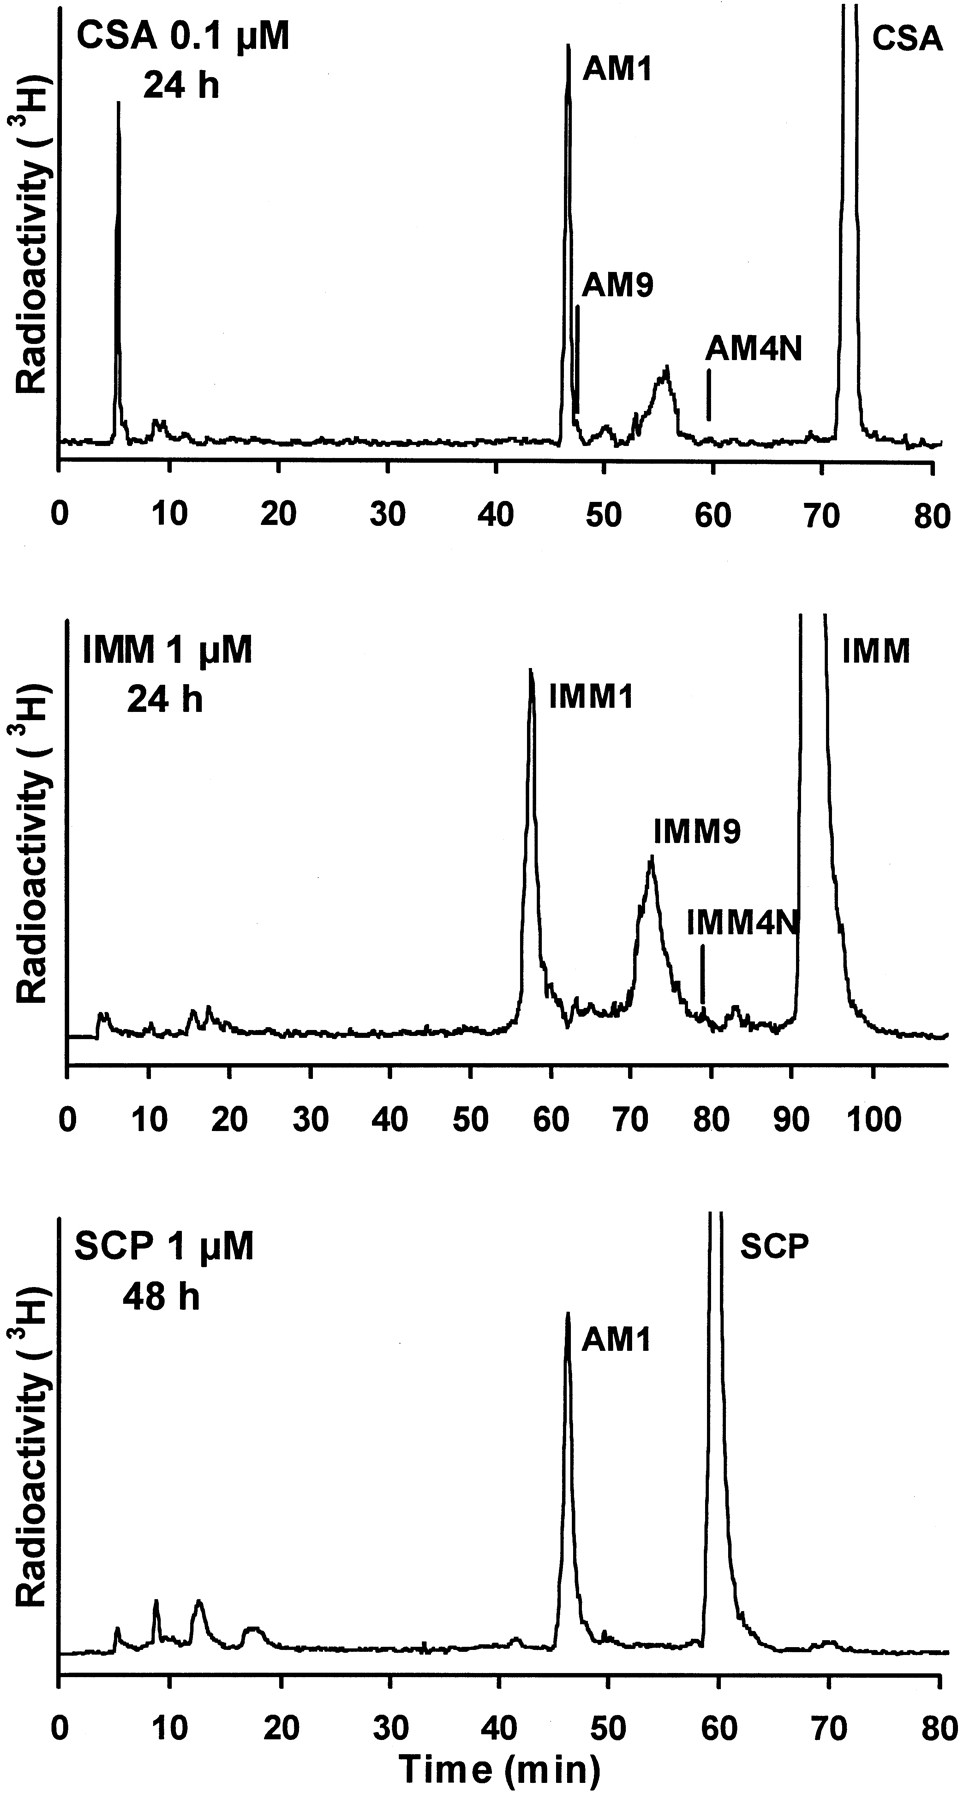 Imm 24 Human And Rat Lung Biotransformation Of Cyclosporin A And Its